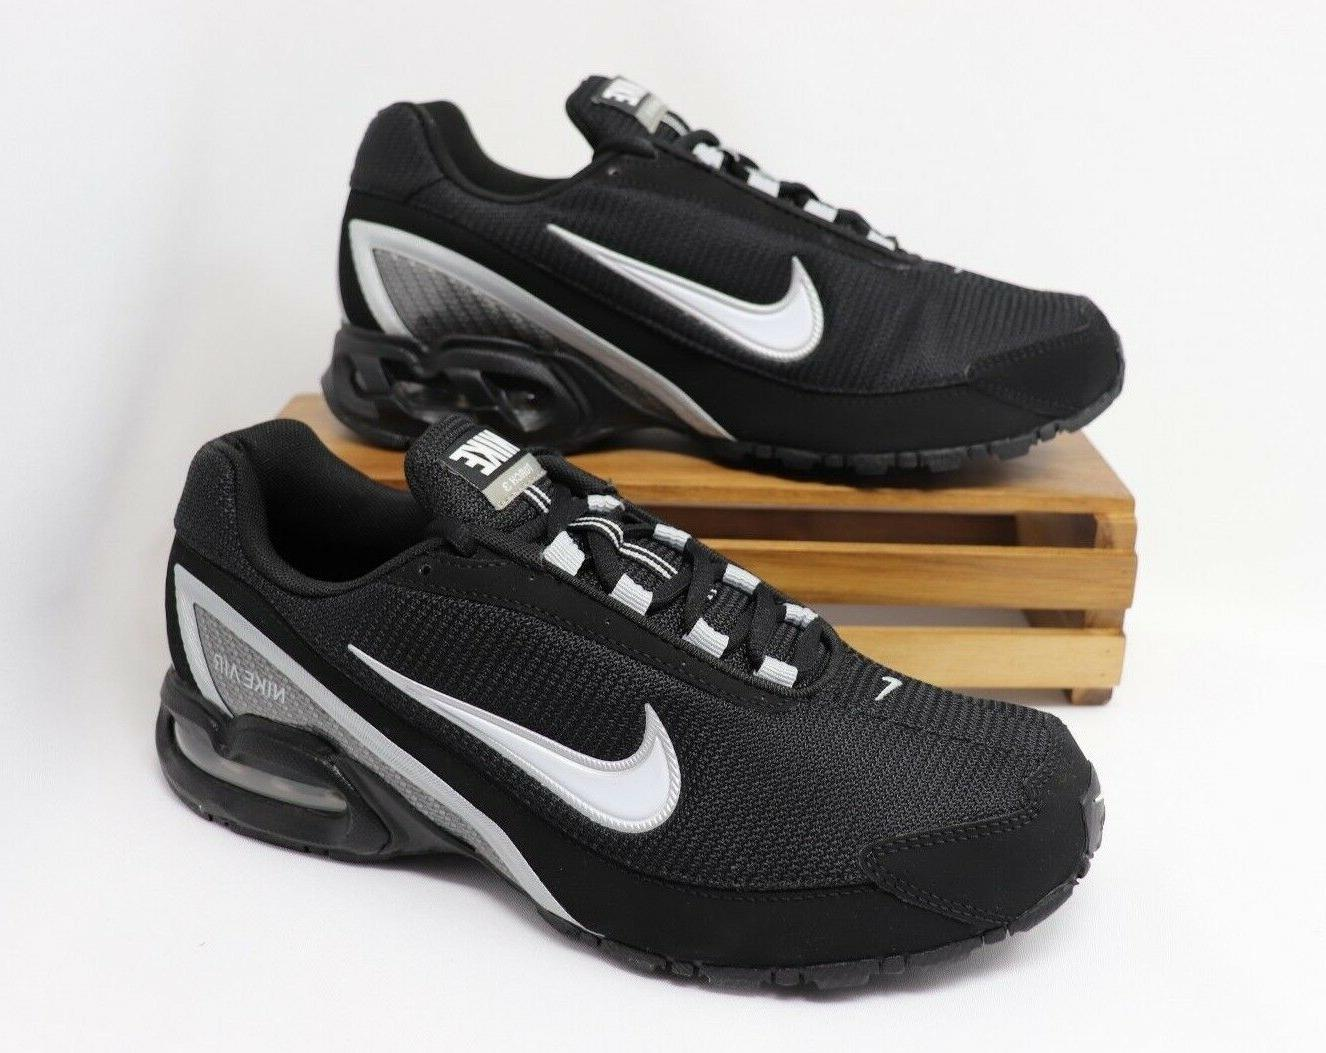 Nike Air Max Torch 3 Running Shoes Black White Silver 319116